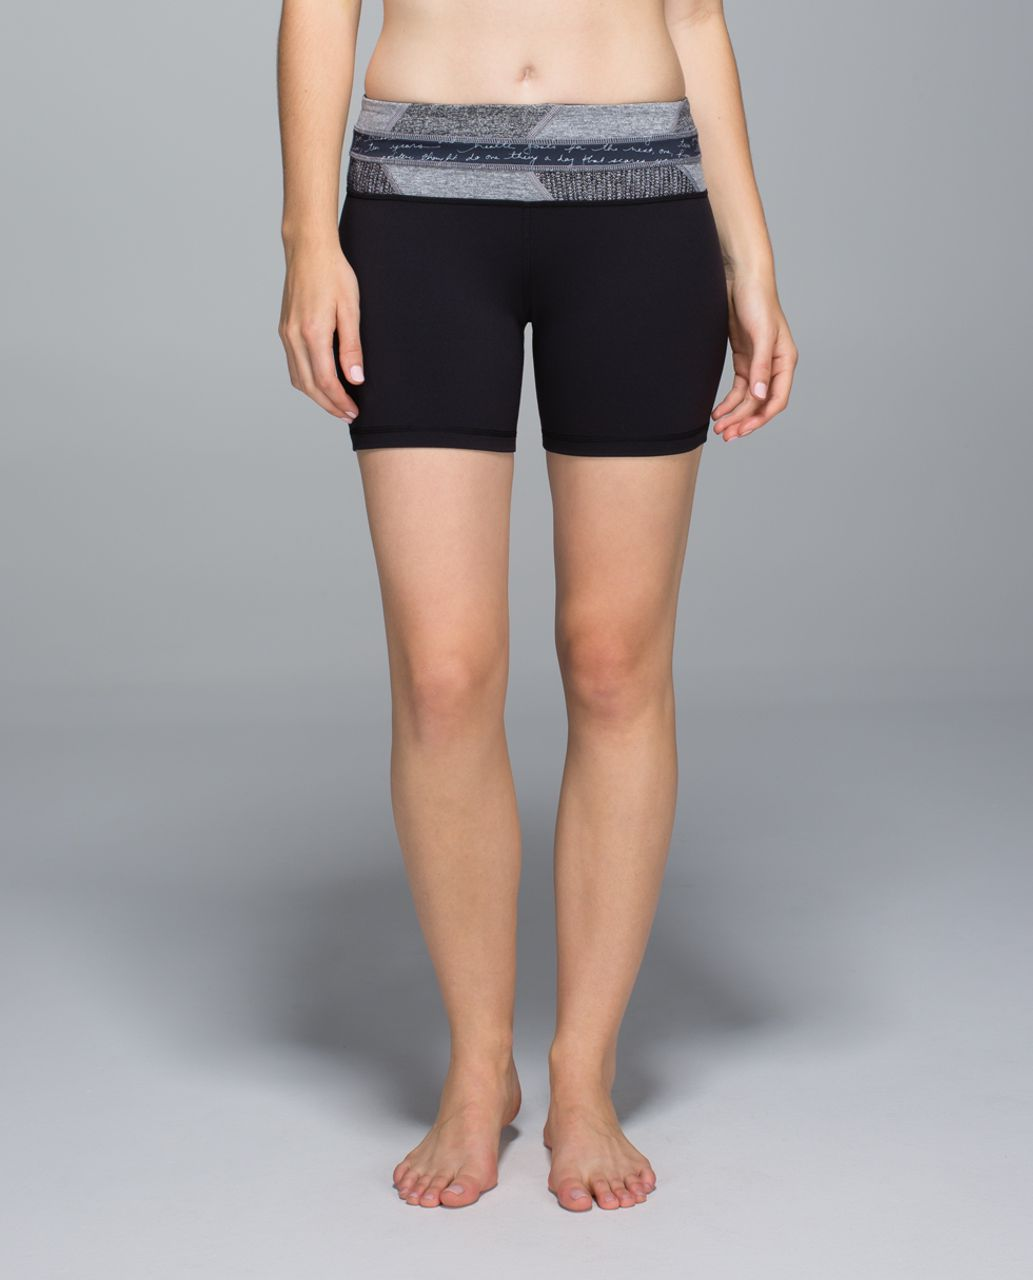 Lululemon Groove Short *Full-On Luon (Regular) - Black / Fa14 Quilt 12